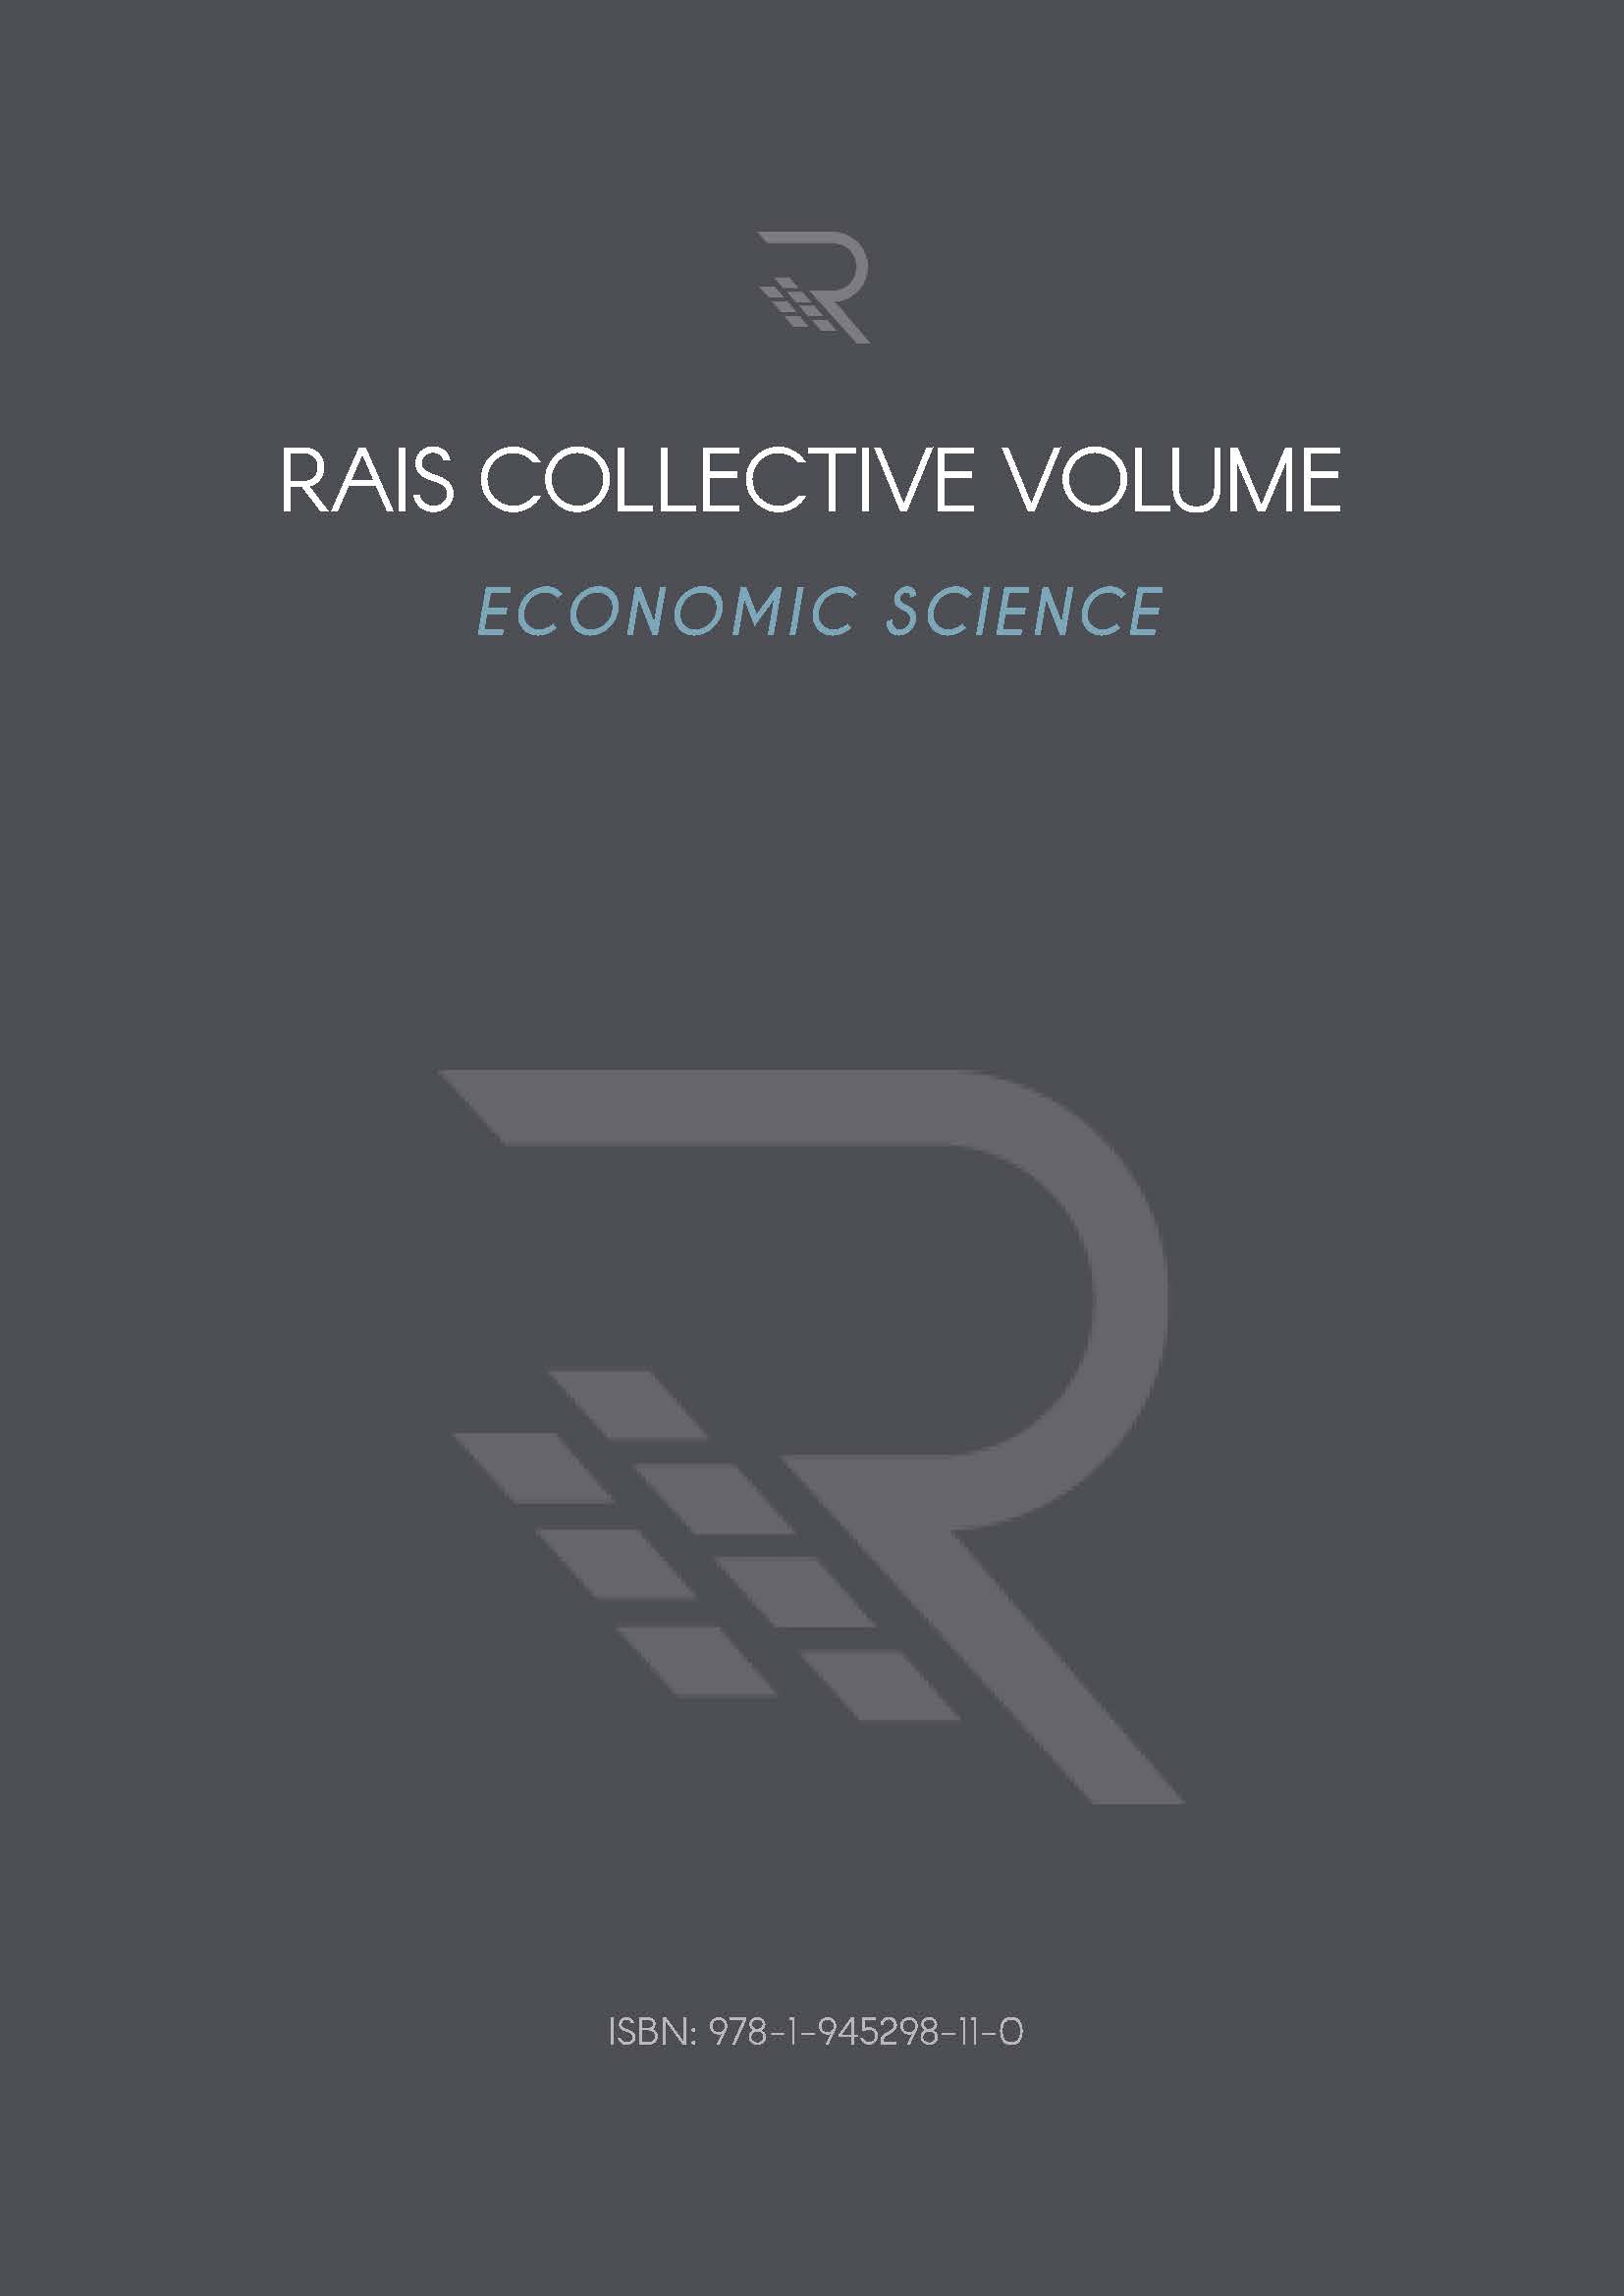 RAIS COLLECTIVE VOLUME – ECONOMIC SCIENCE